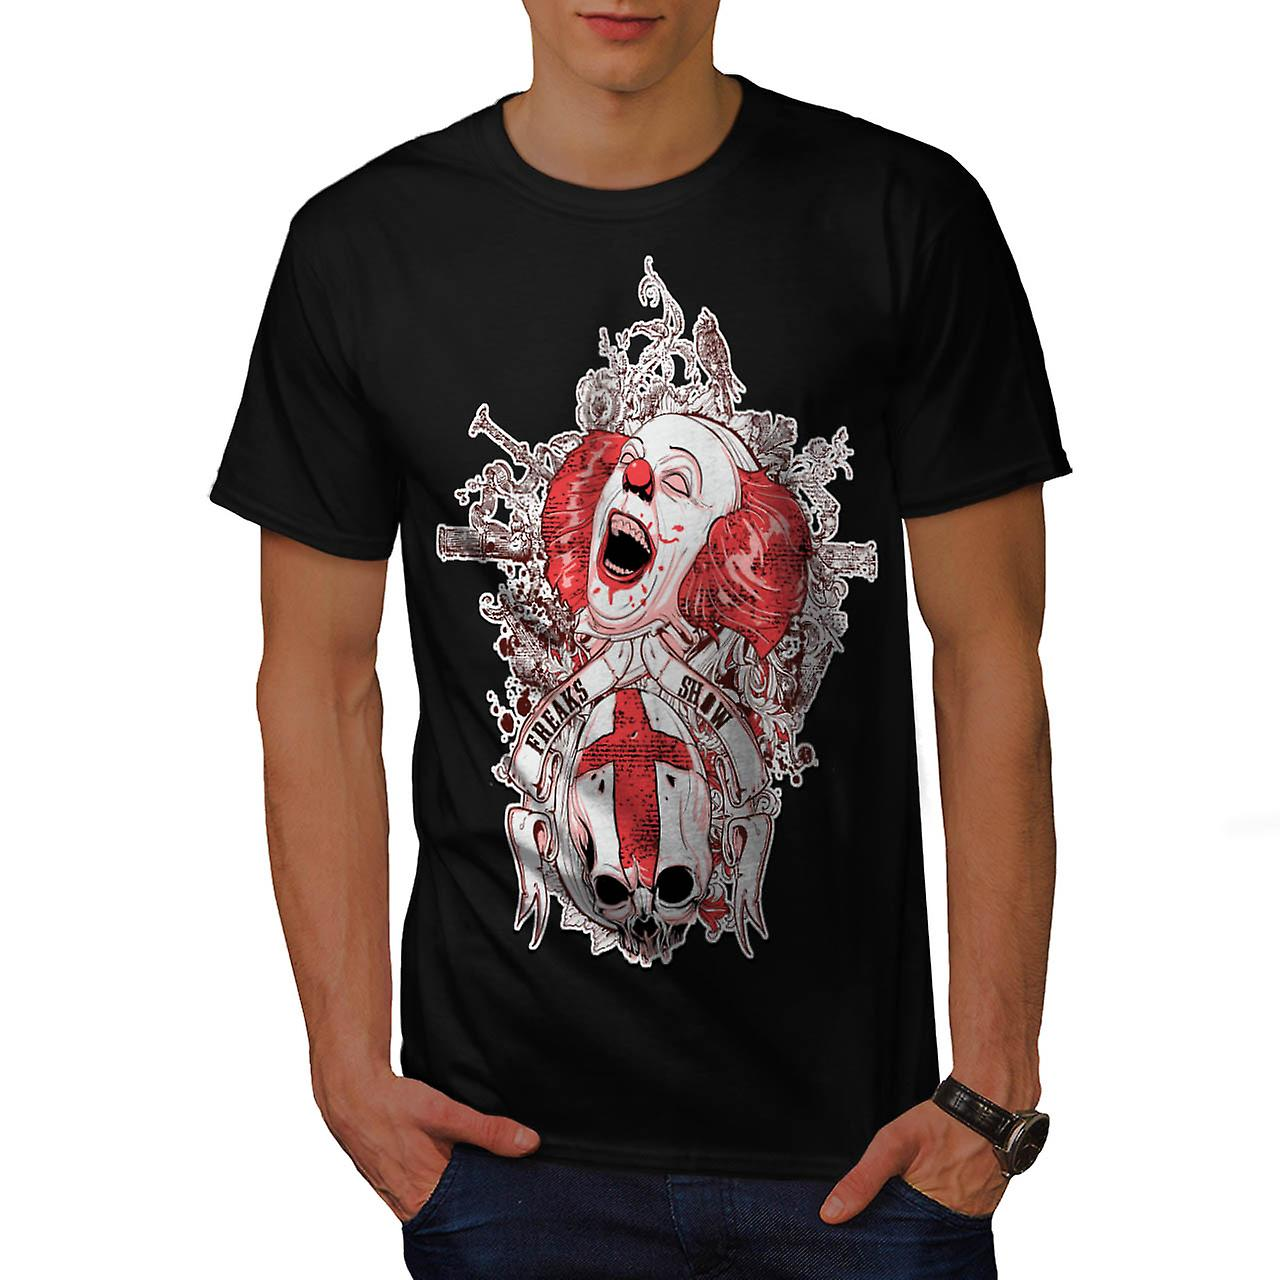 Dood Horror Clown kwaad Freak mannen zwart T-shirt | Wellcoda